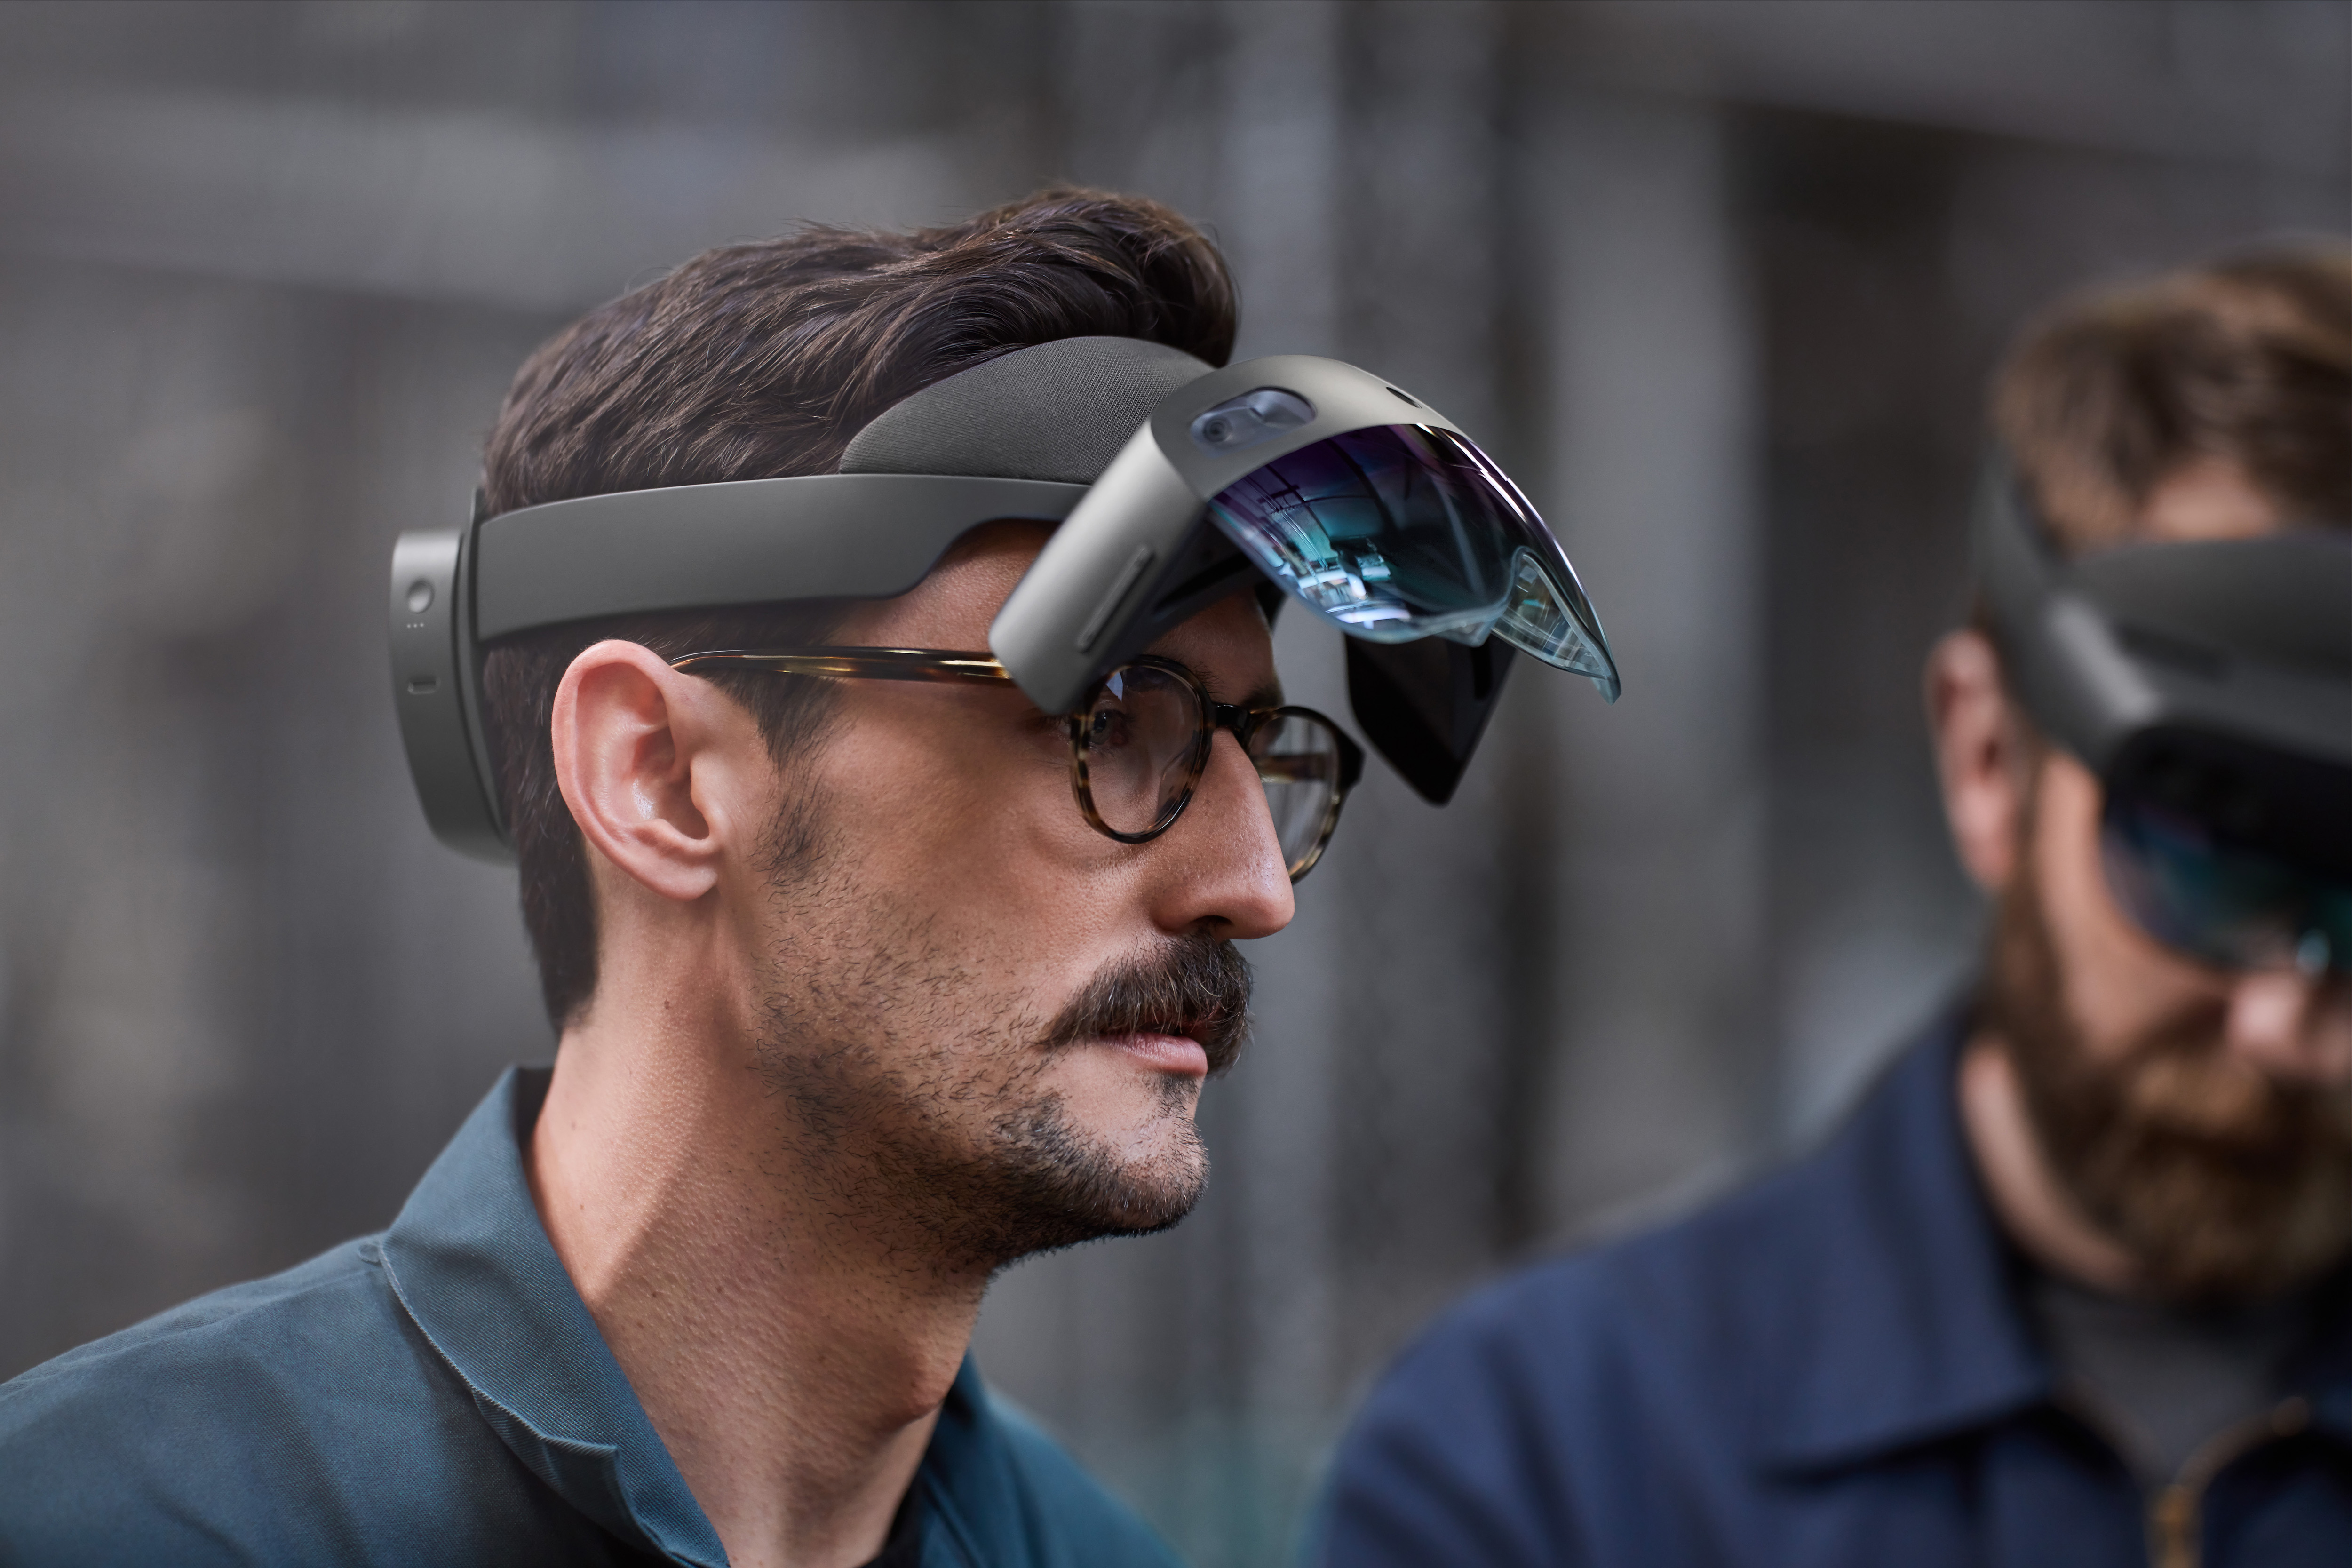 Bosch's Common Augmented Reality Platform (CAP) is now also available for the new Microsoft HoloLens 2